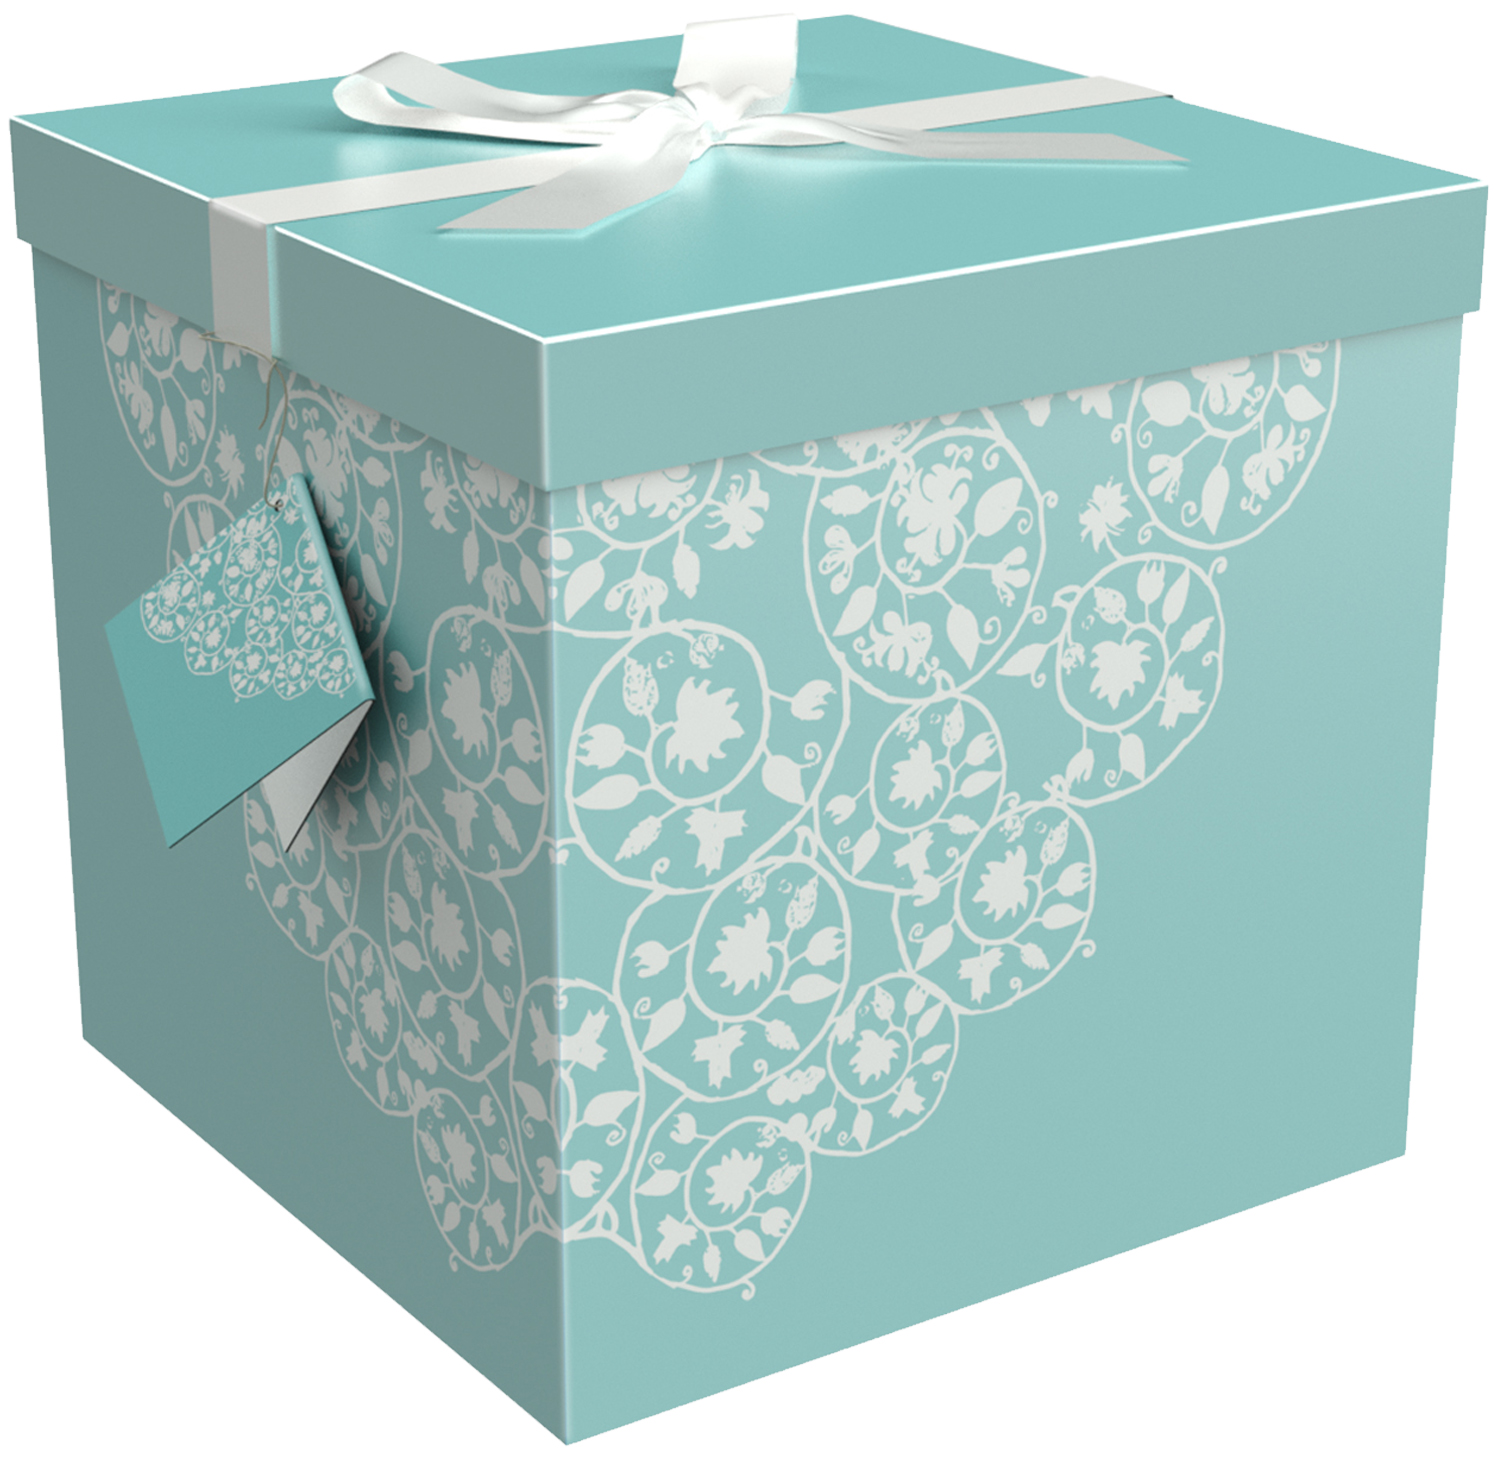 Gift Box 12x12x12 Cassandra Collection - Easy to Assemble & Reusable - No Glue Required - Ribbon, Tissue Paper, and Gift Tag Included - EZ Gift Box by Endless Art US